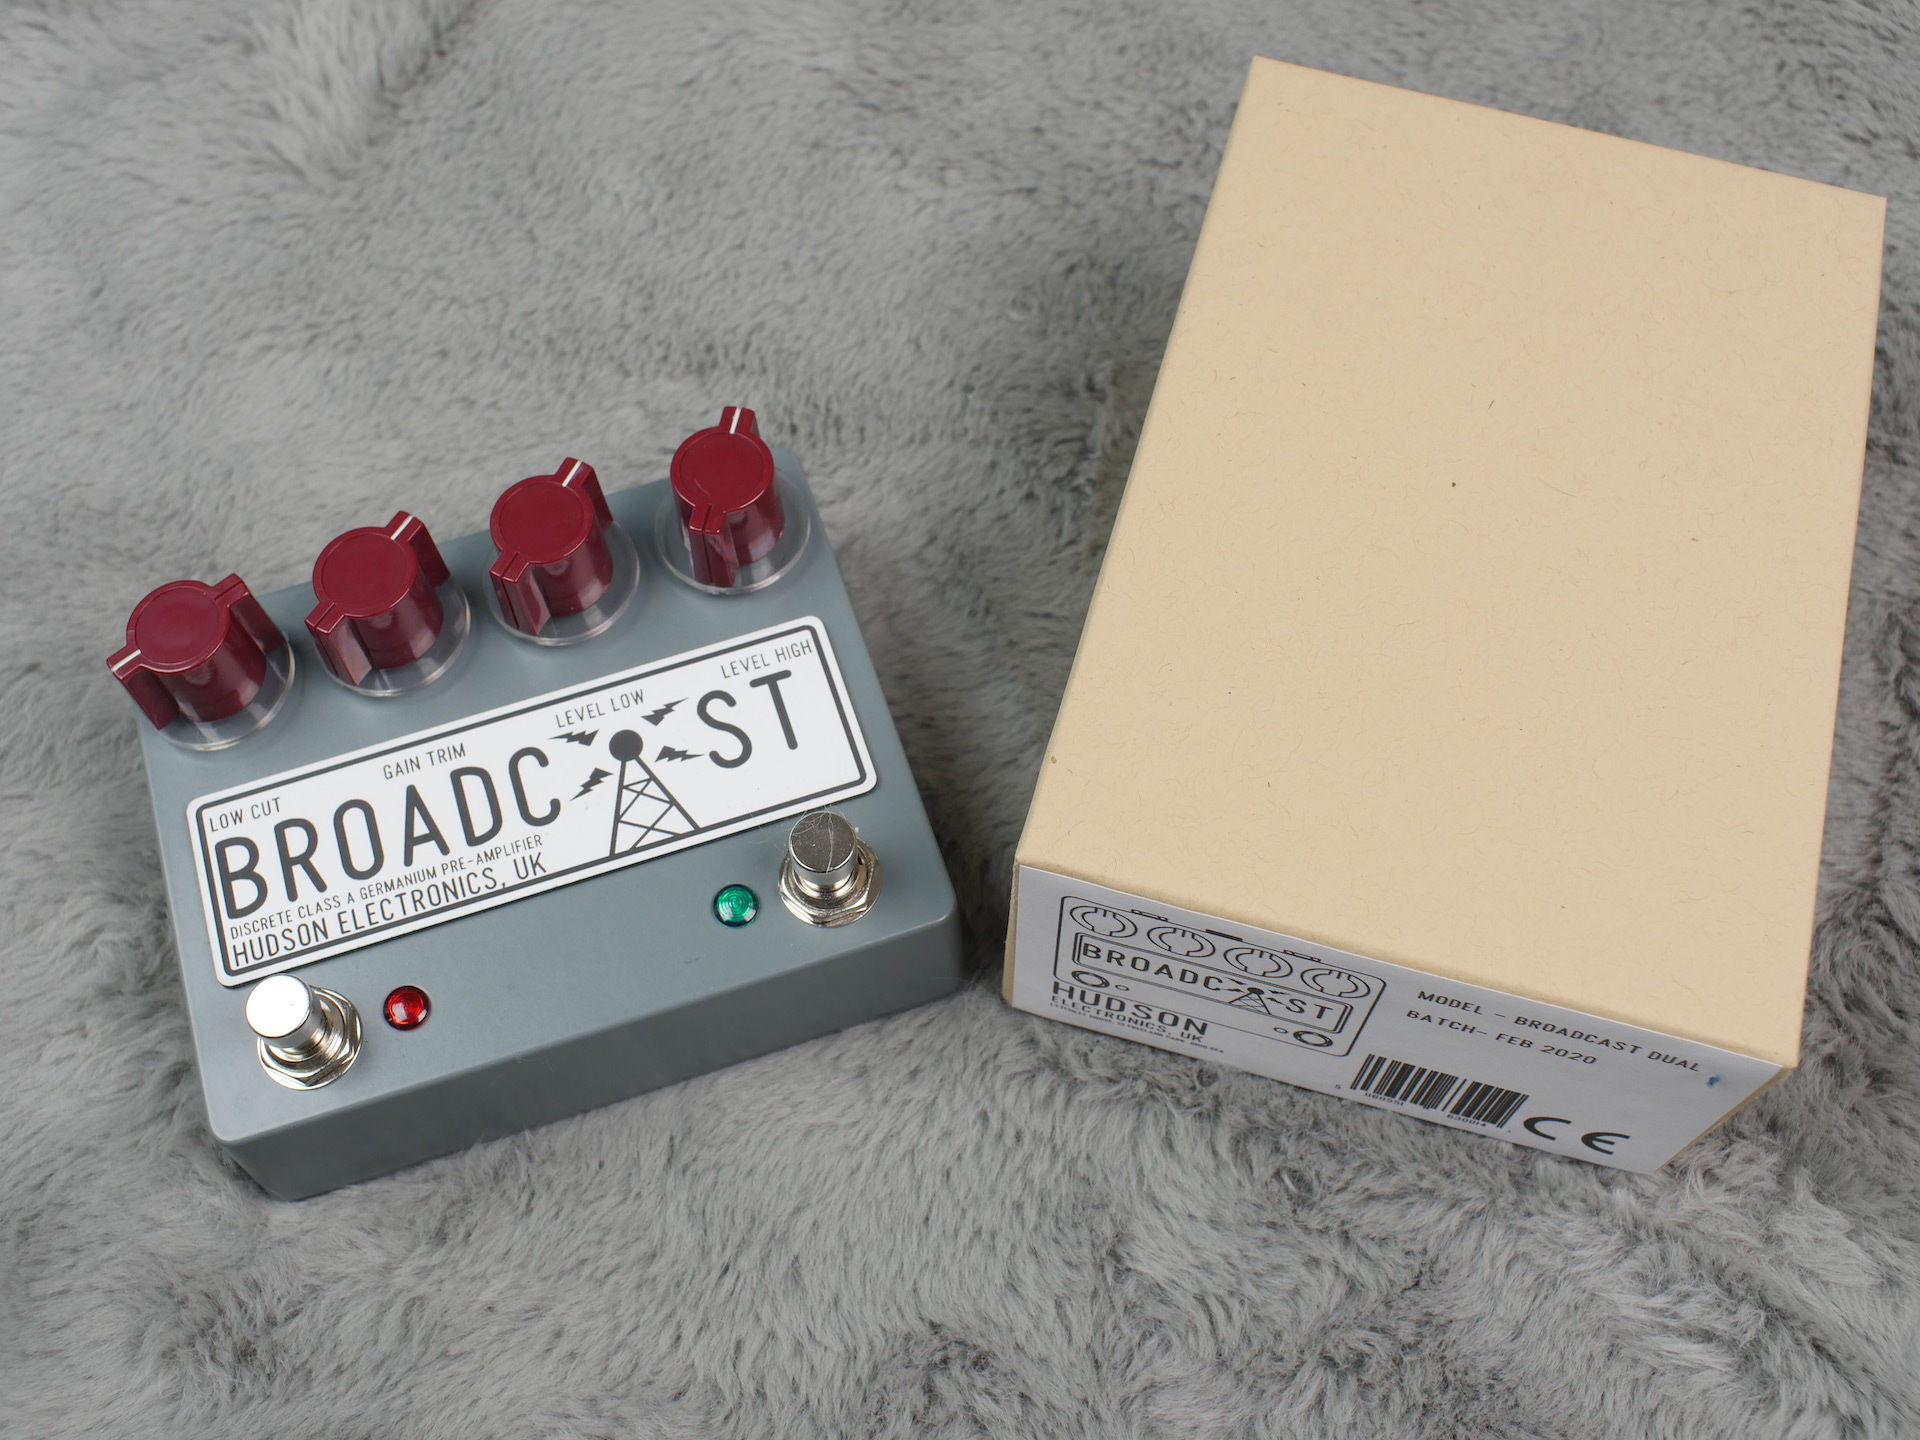 Hudson Electronics Broadcast - Dual Foot Switch - Brand New! - Free Shipping!